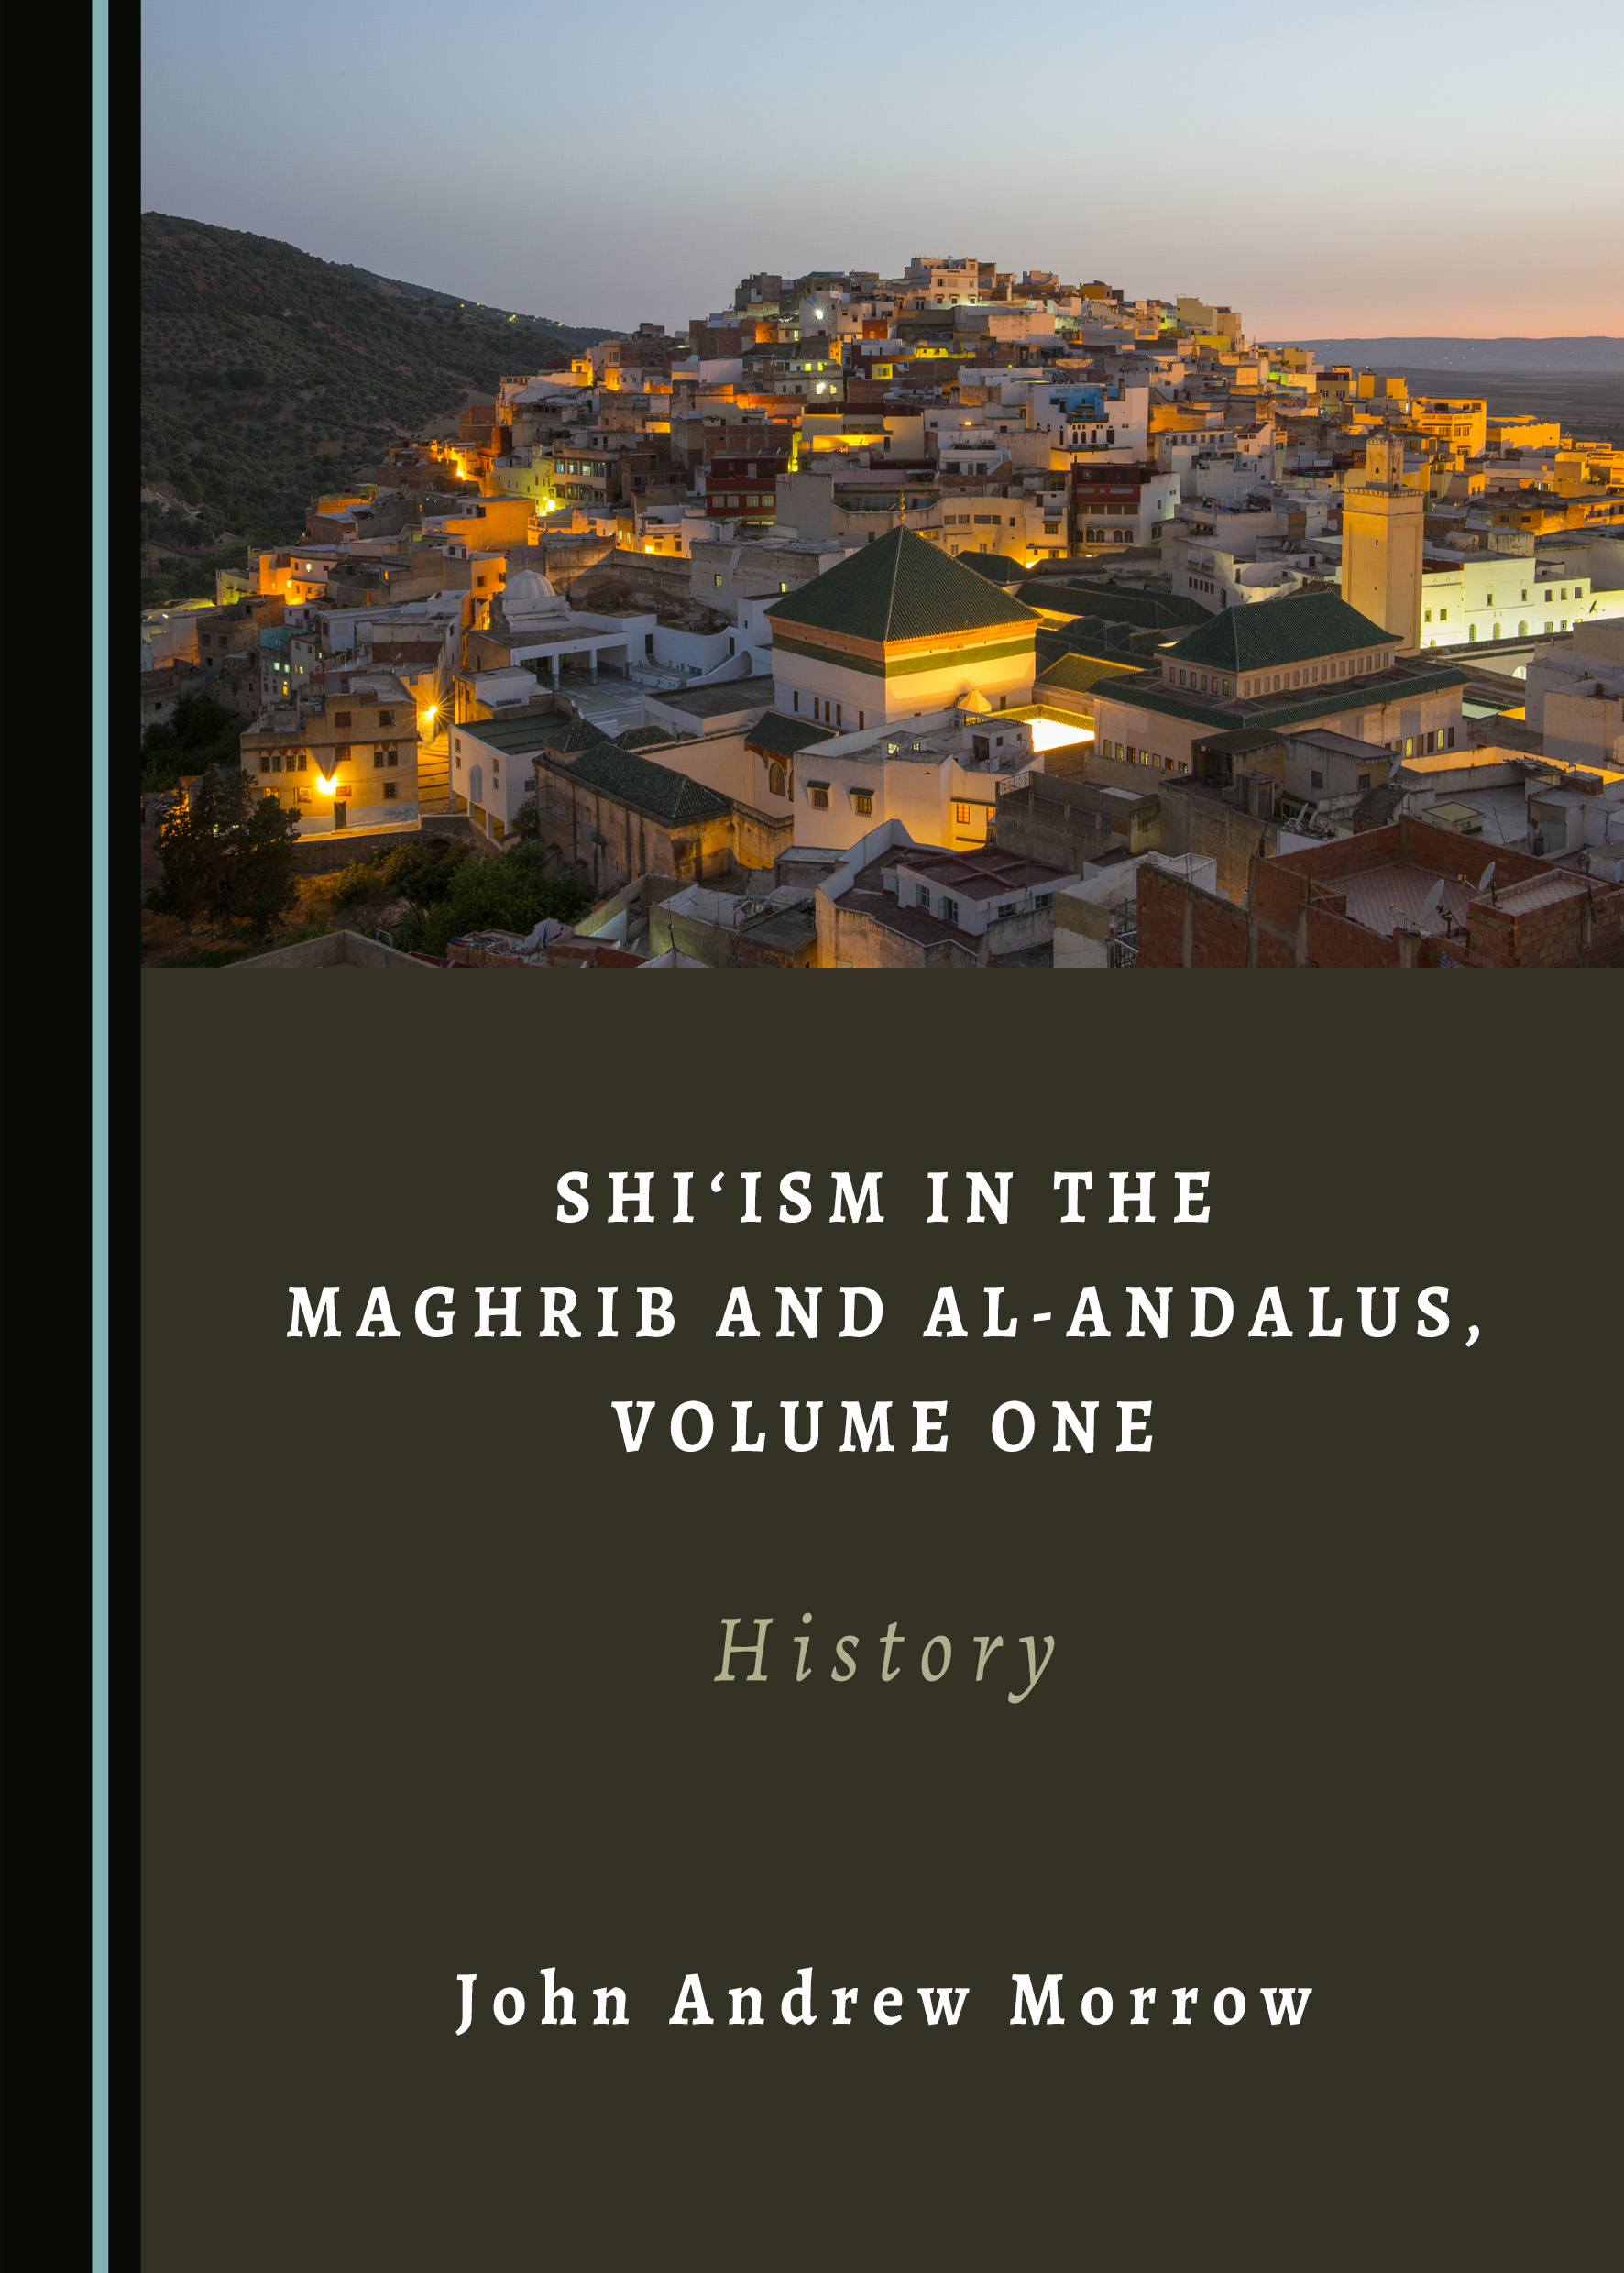 Shi'ism in the Maghrib and al-Andalus, Volume One: History